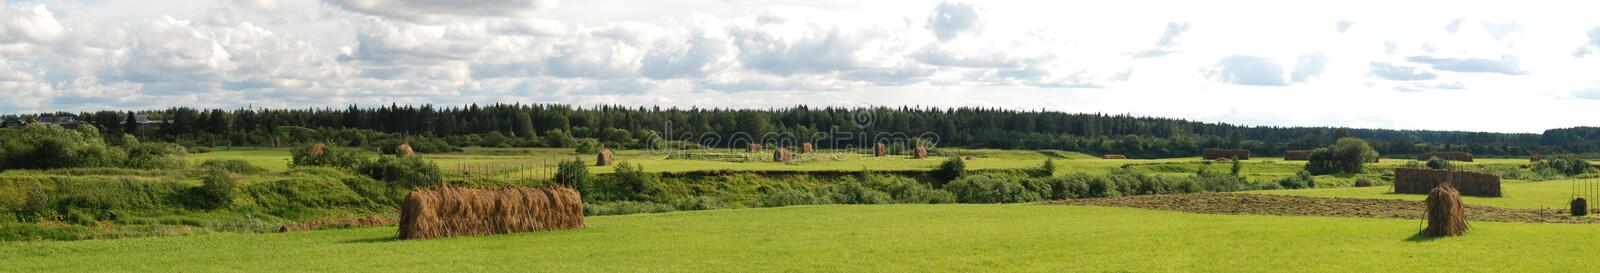 Russian countryside stock photo